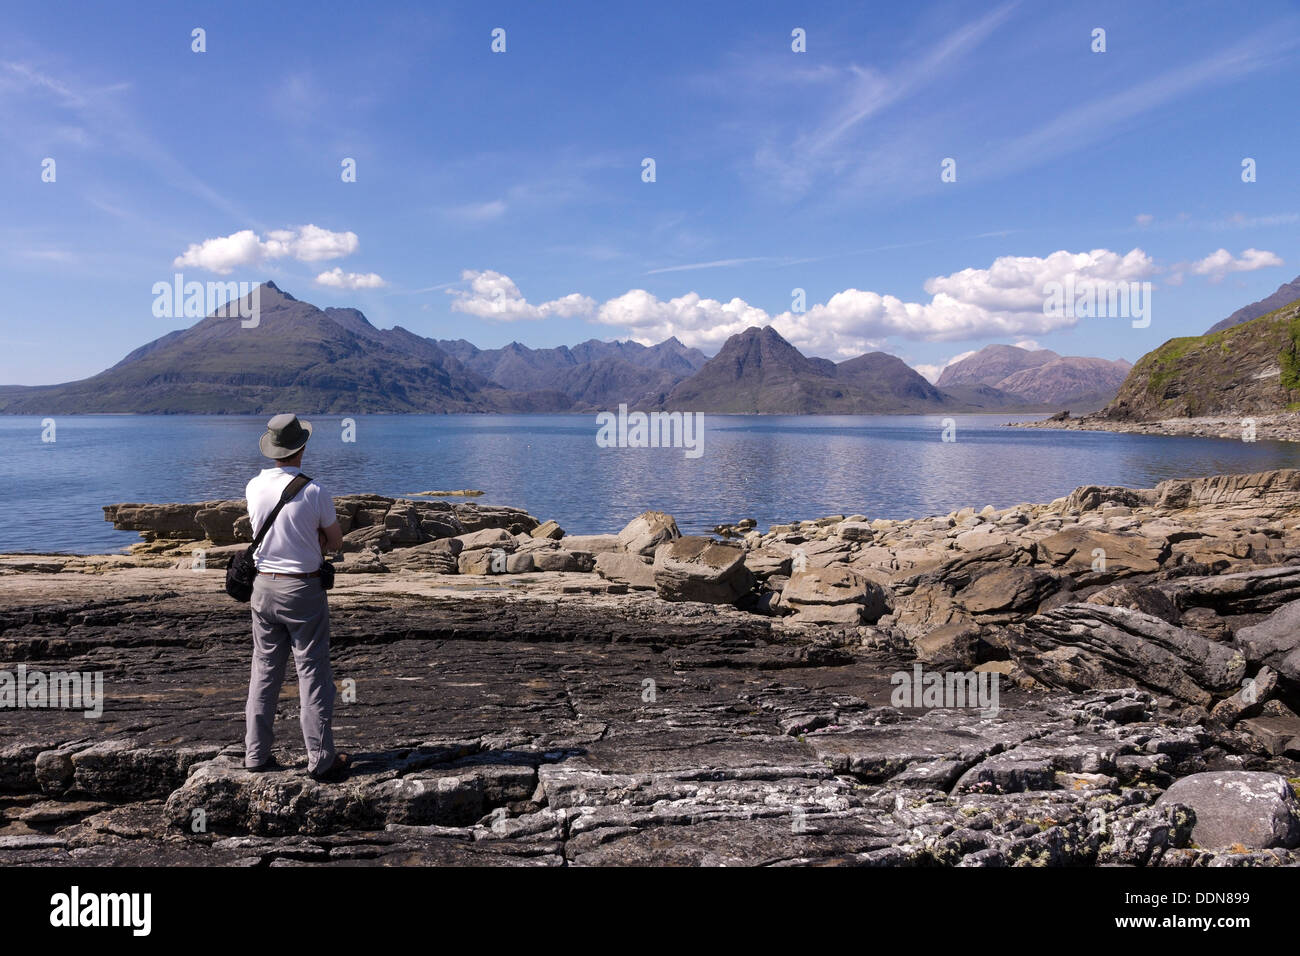 Male holidaymaker admiring view from Elgol over Sea Loch Scavaig to the Black Cuillin mountains, Isle of Skye, Scotland, UK - Stock Image